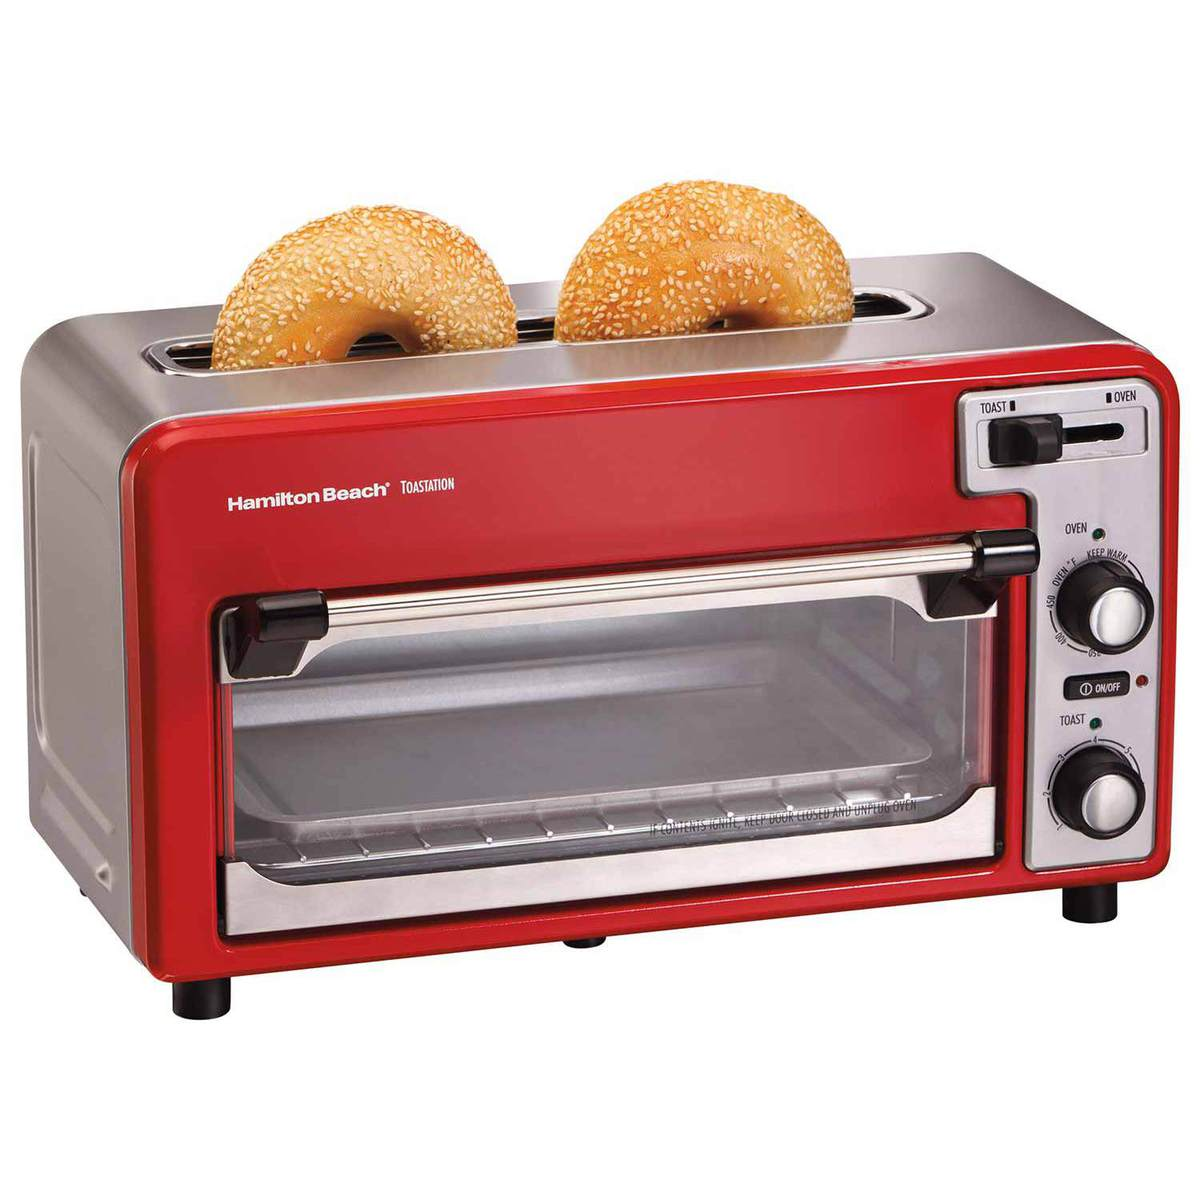 image interior oven microwave reviews combo combination trends and style popular a for is trend toaster there astonishing fascinating